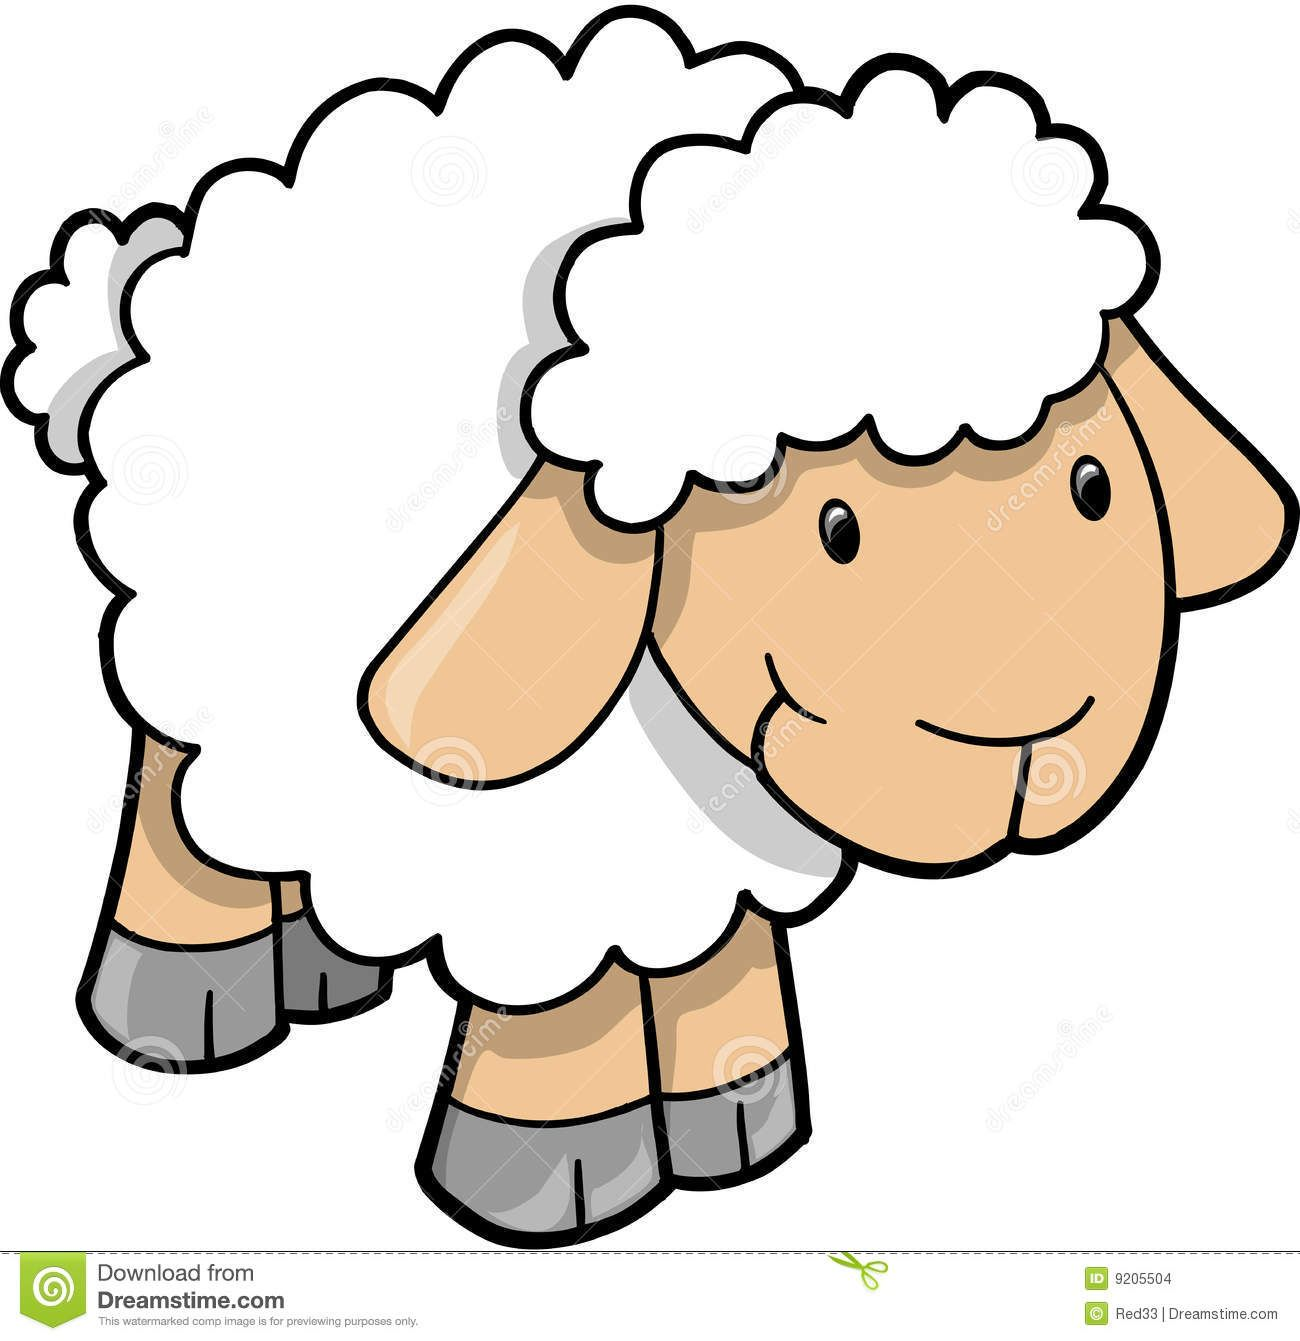 cute sheep images cute sheep lamb vector stock images image rh pinterest com Free Heart Clip Art Vector Free Vector File Clip Art